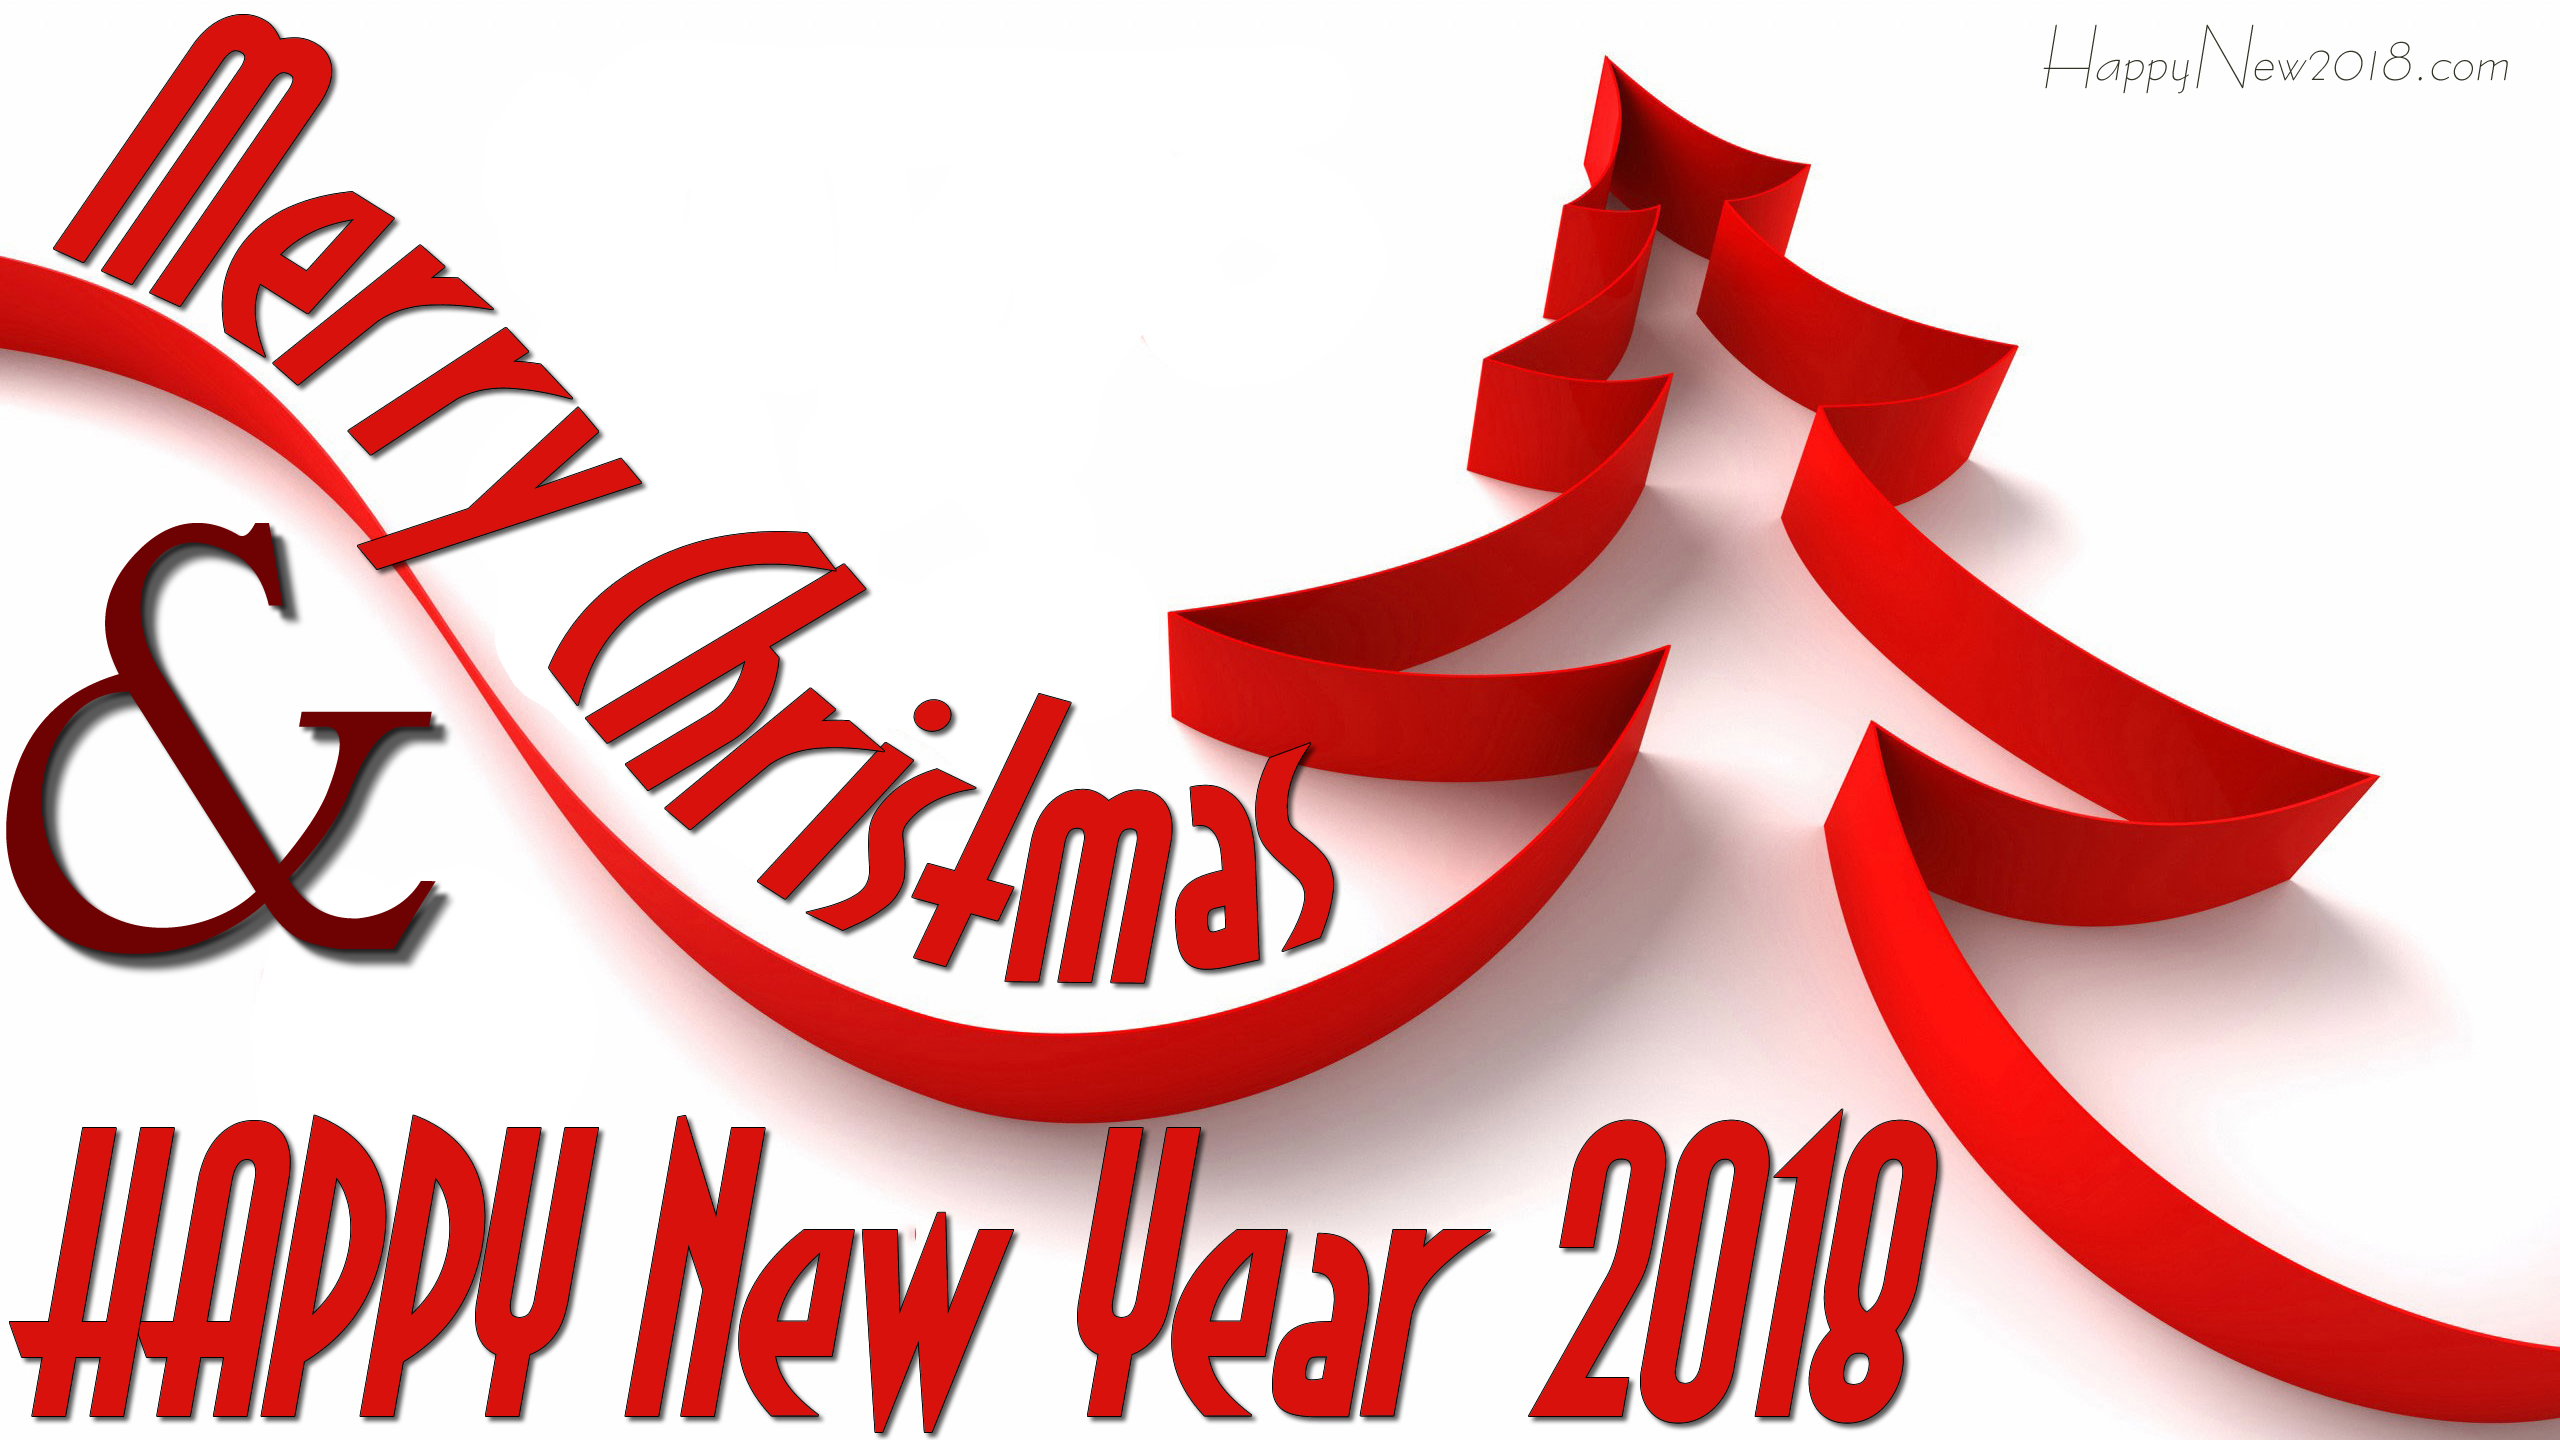 merry christmas and happy new year 2018 merry christmas and happy new year 2018